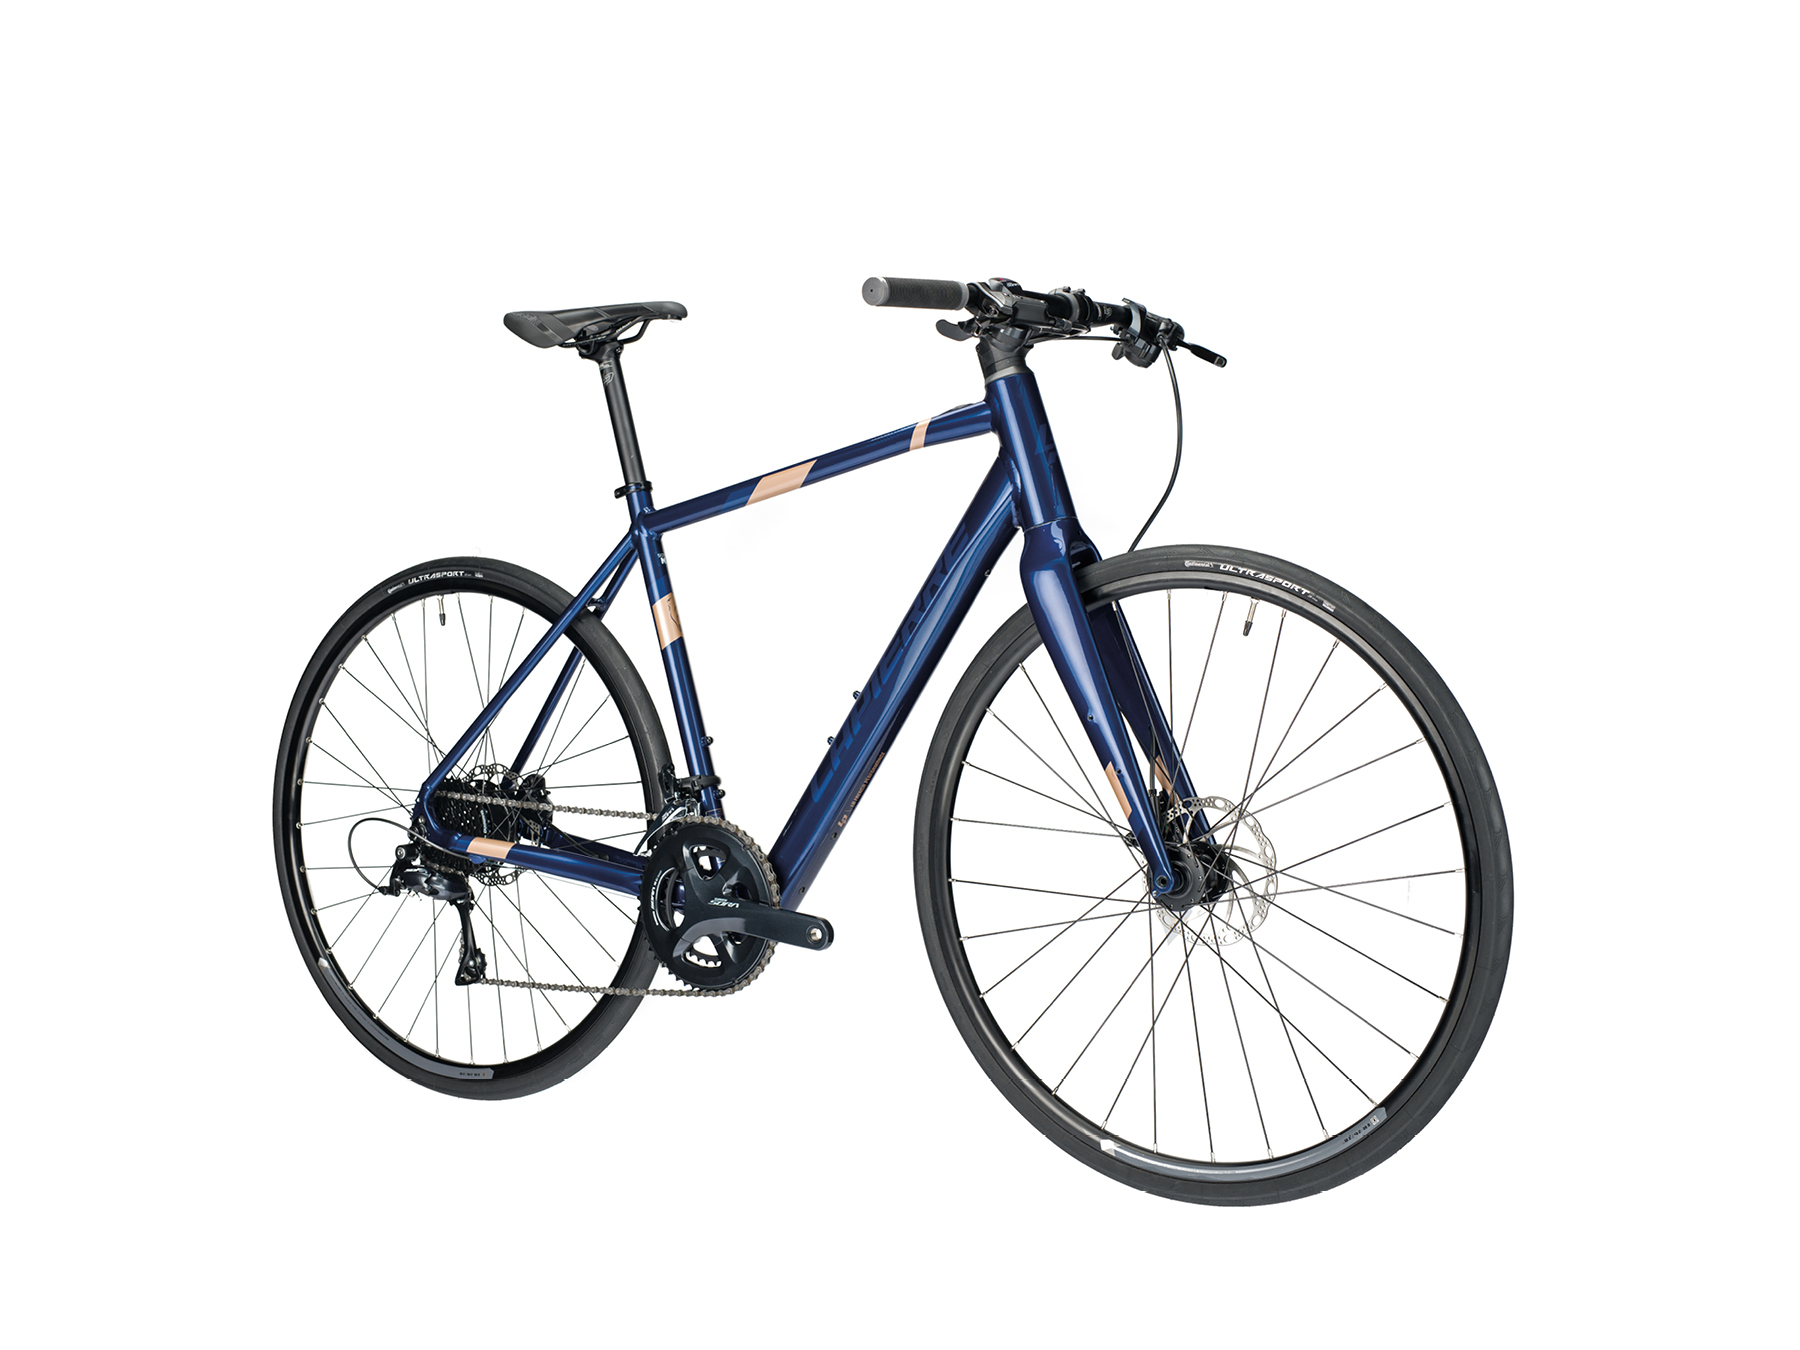 Lapierrre eSensium AL 200 Flat 2020 Road Bike with Electric Assist